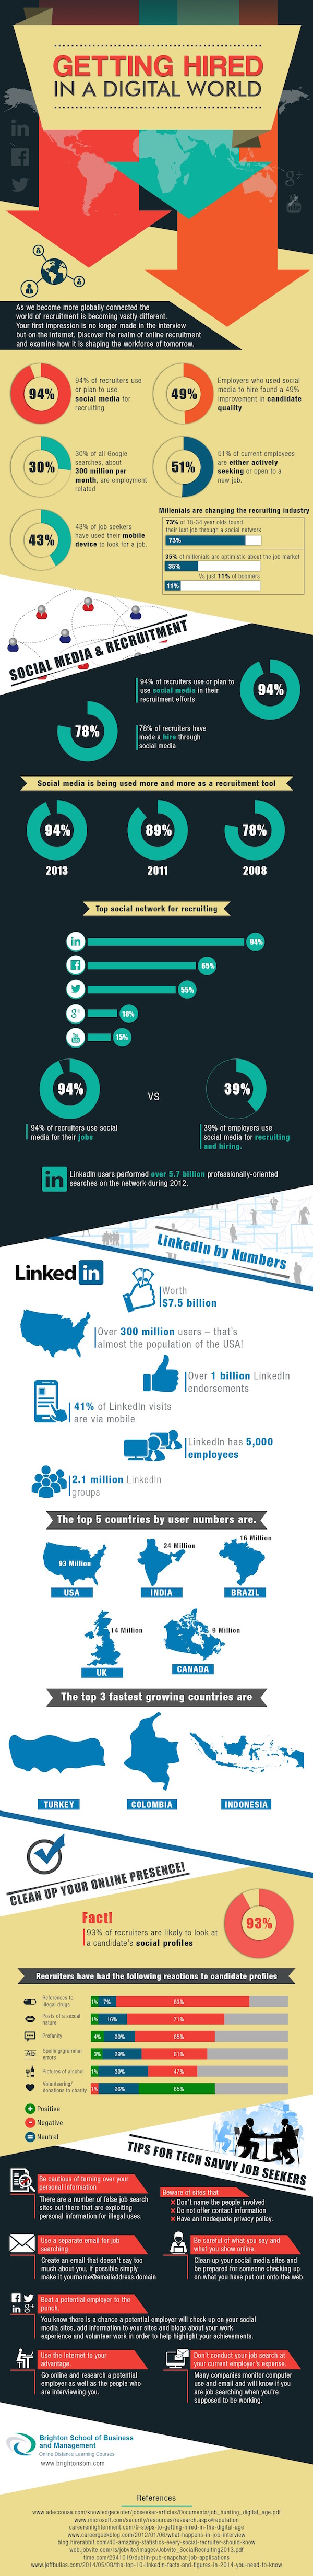 BSBM - Getting Hired in a Digital World - Infographic